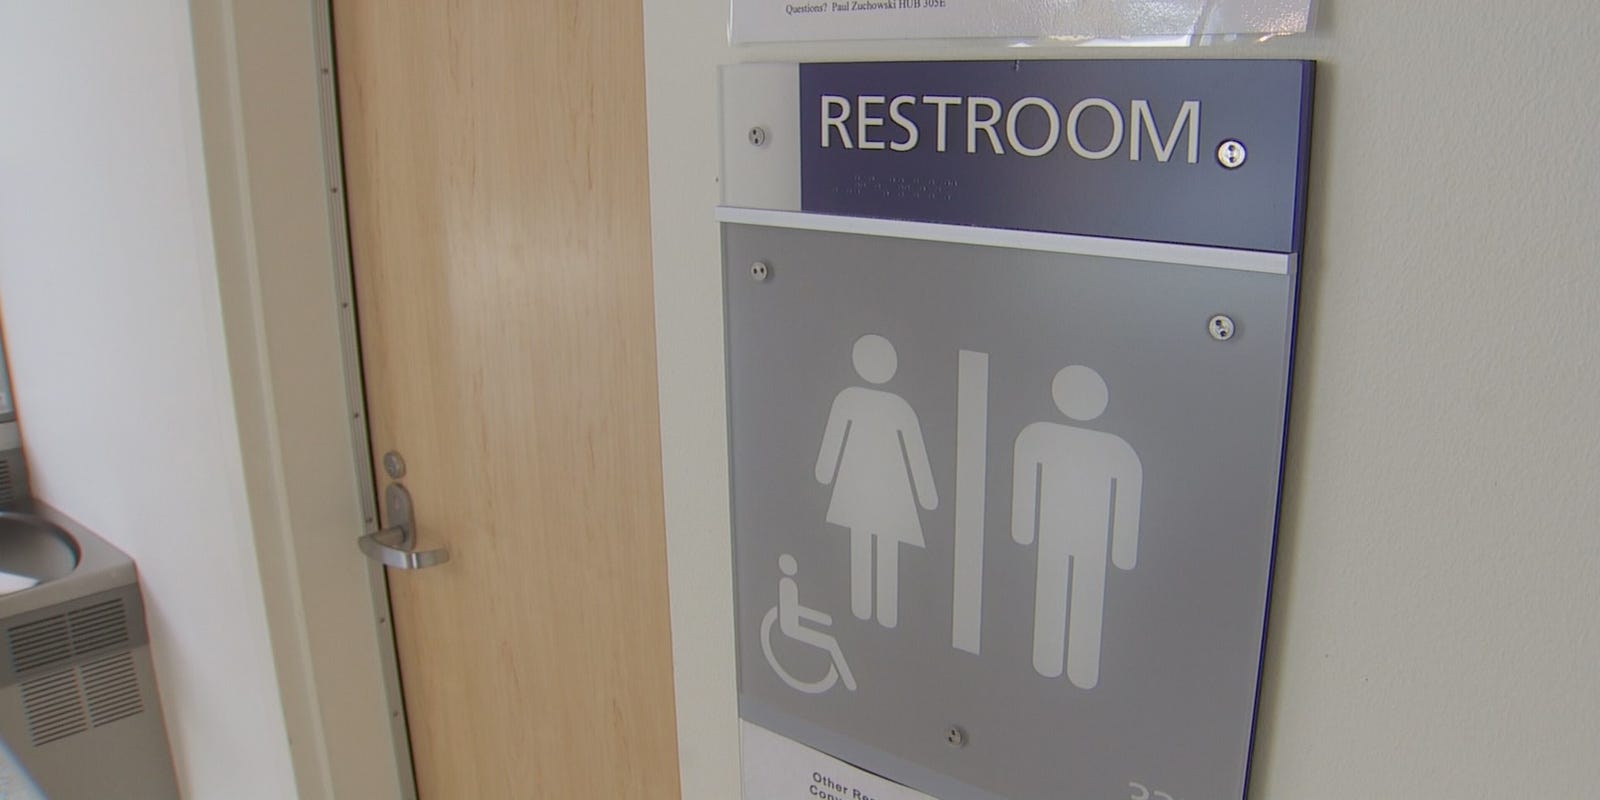 UW Students Call For More Gender-neutral Restrooms